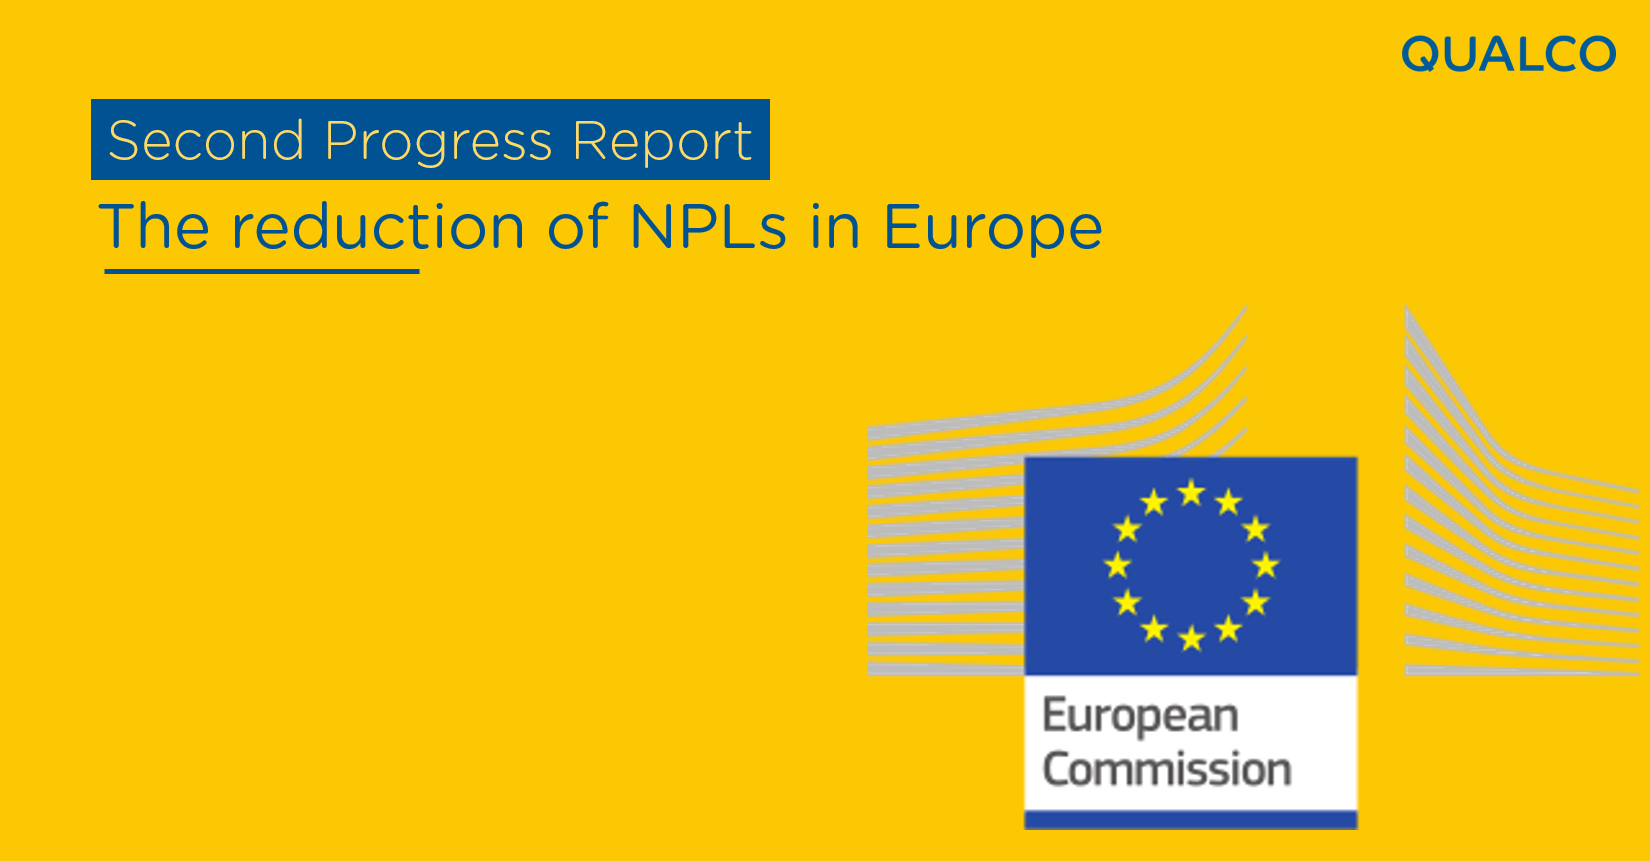 Second Progress Report on the Reduction of Non-Performing Loans in Europe